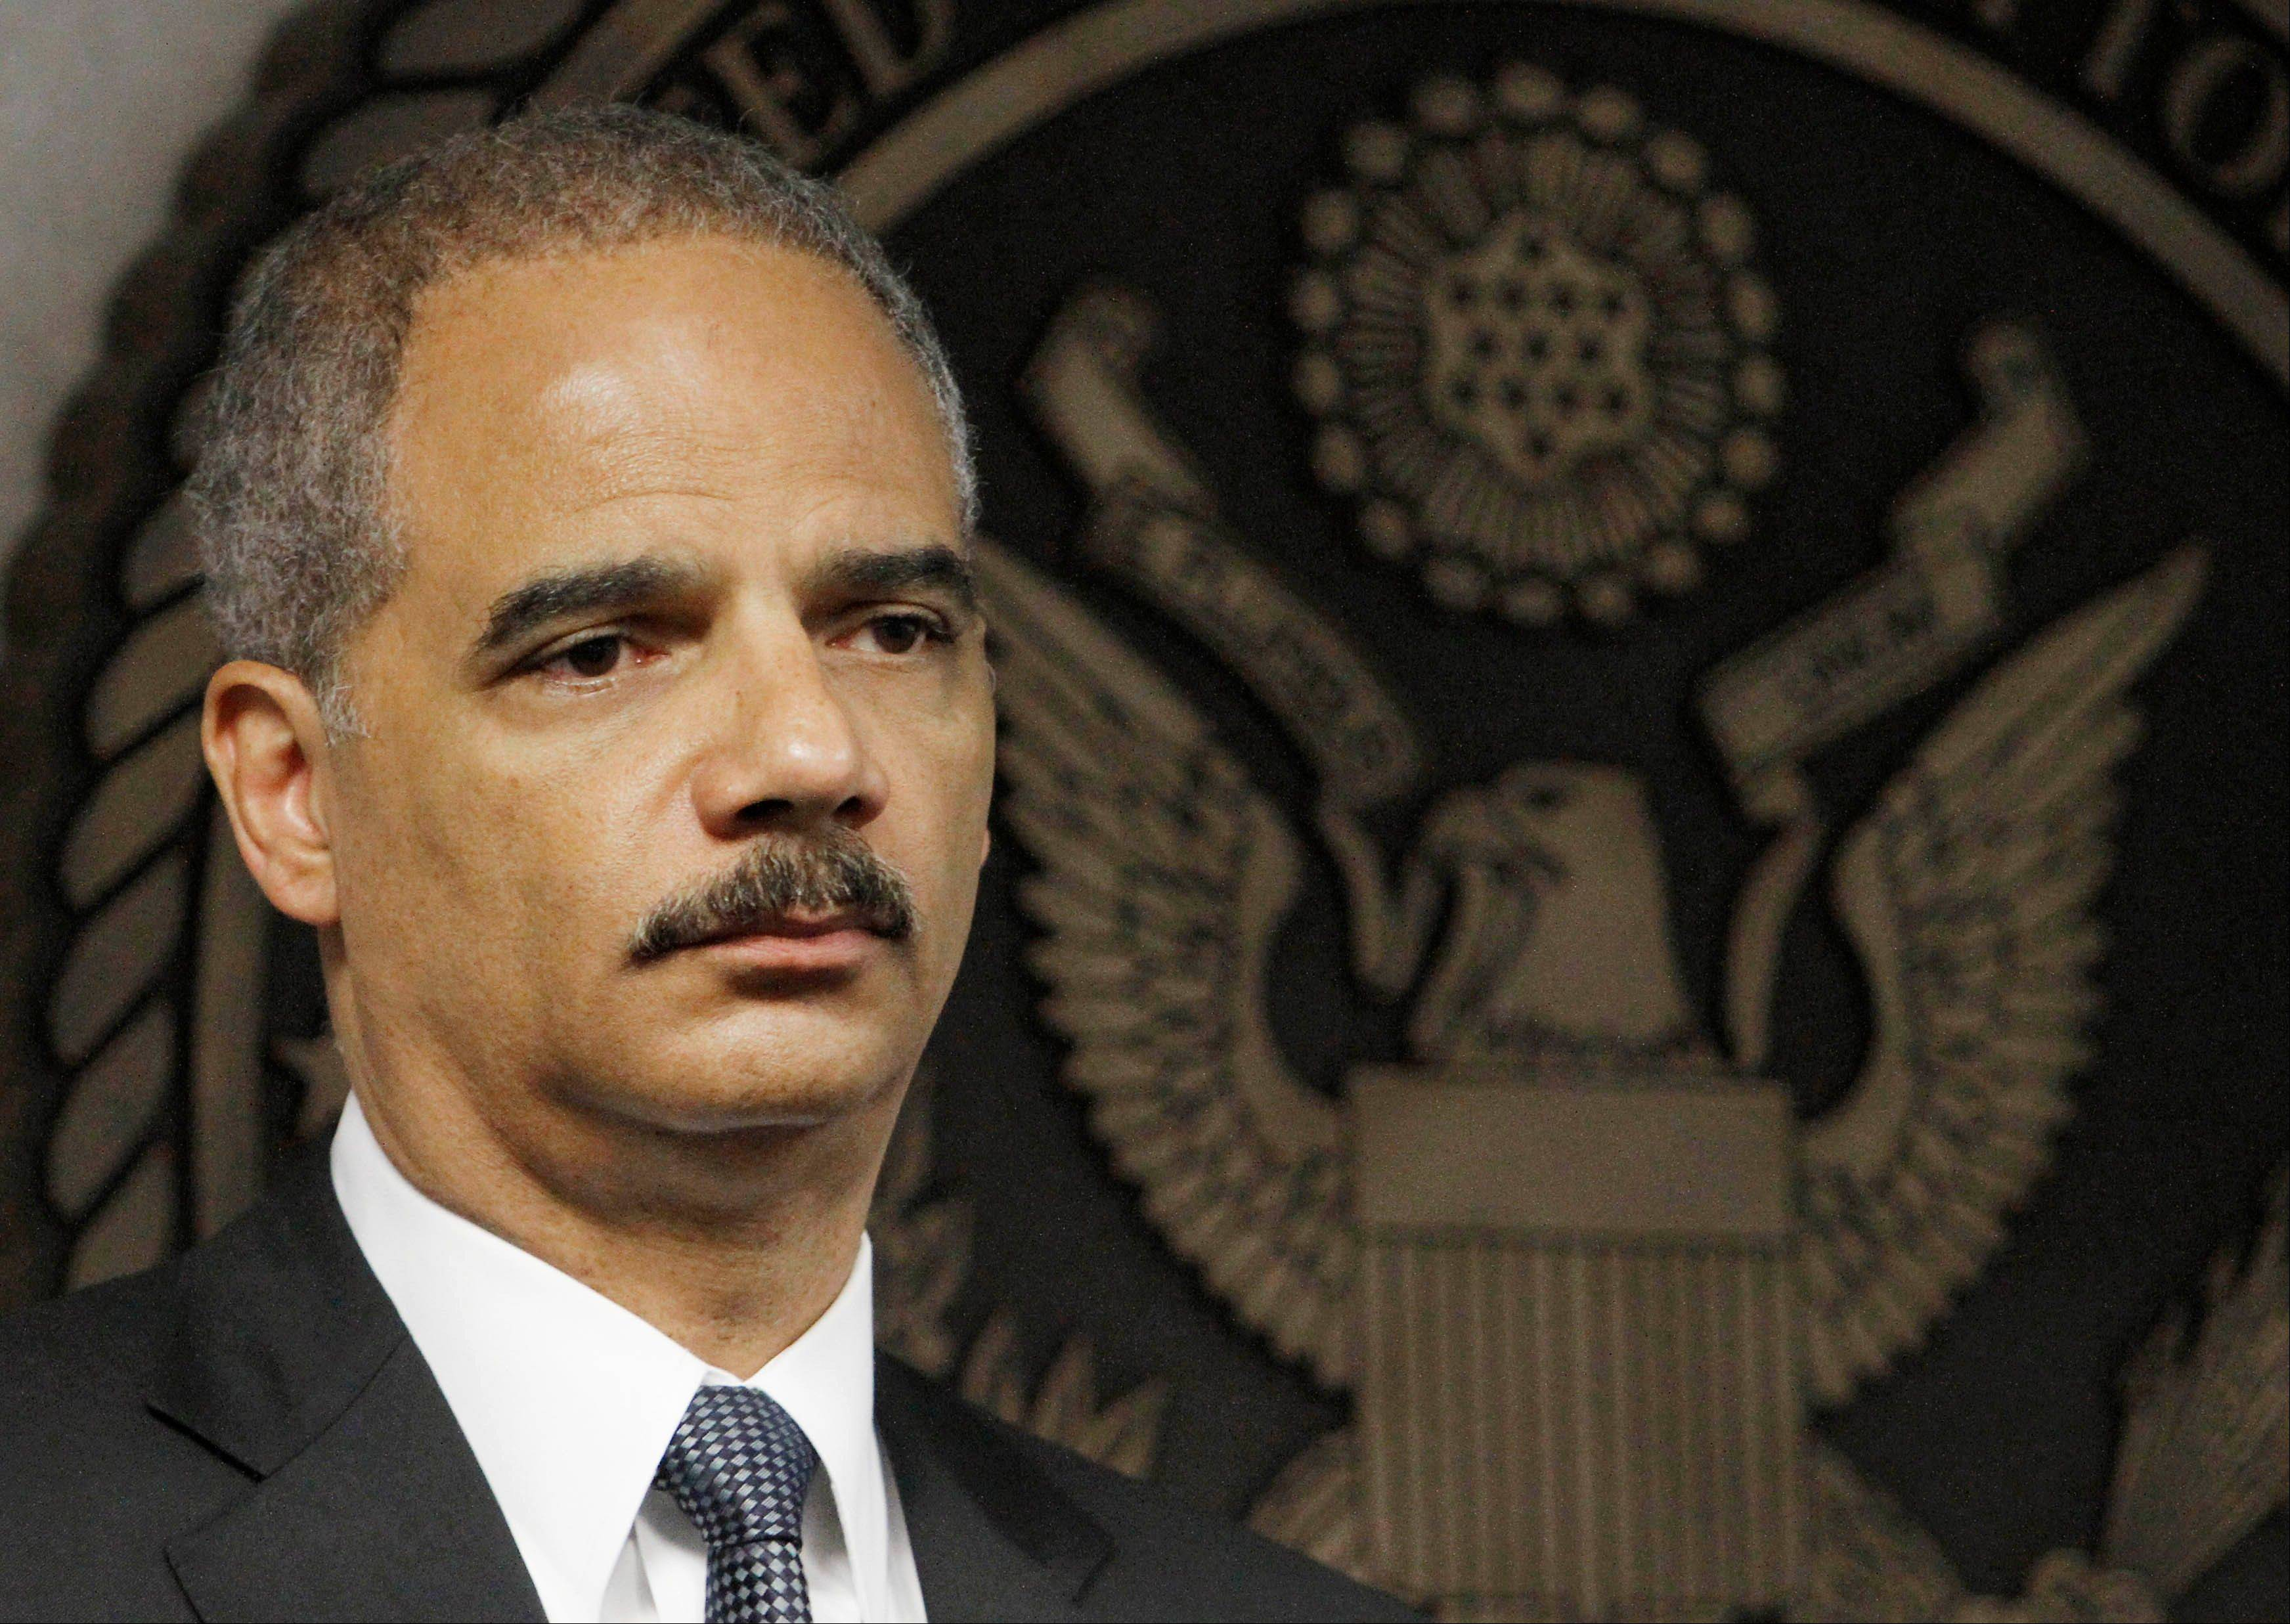 The Obama administration is issuing new recommendations on classroom discipline that seek to end the apparent disparities in how students of different races are punished for violating school rules. Attorney General Eric Holder said the problem often stems from well intentioned �zero-tolerance� policies that too often inject the criminal justice system into the resolution of problems.